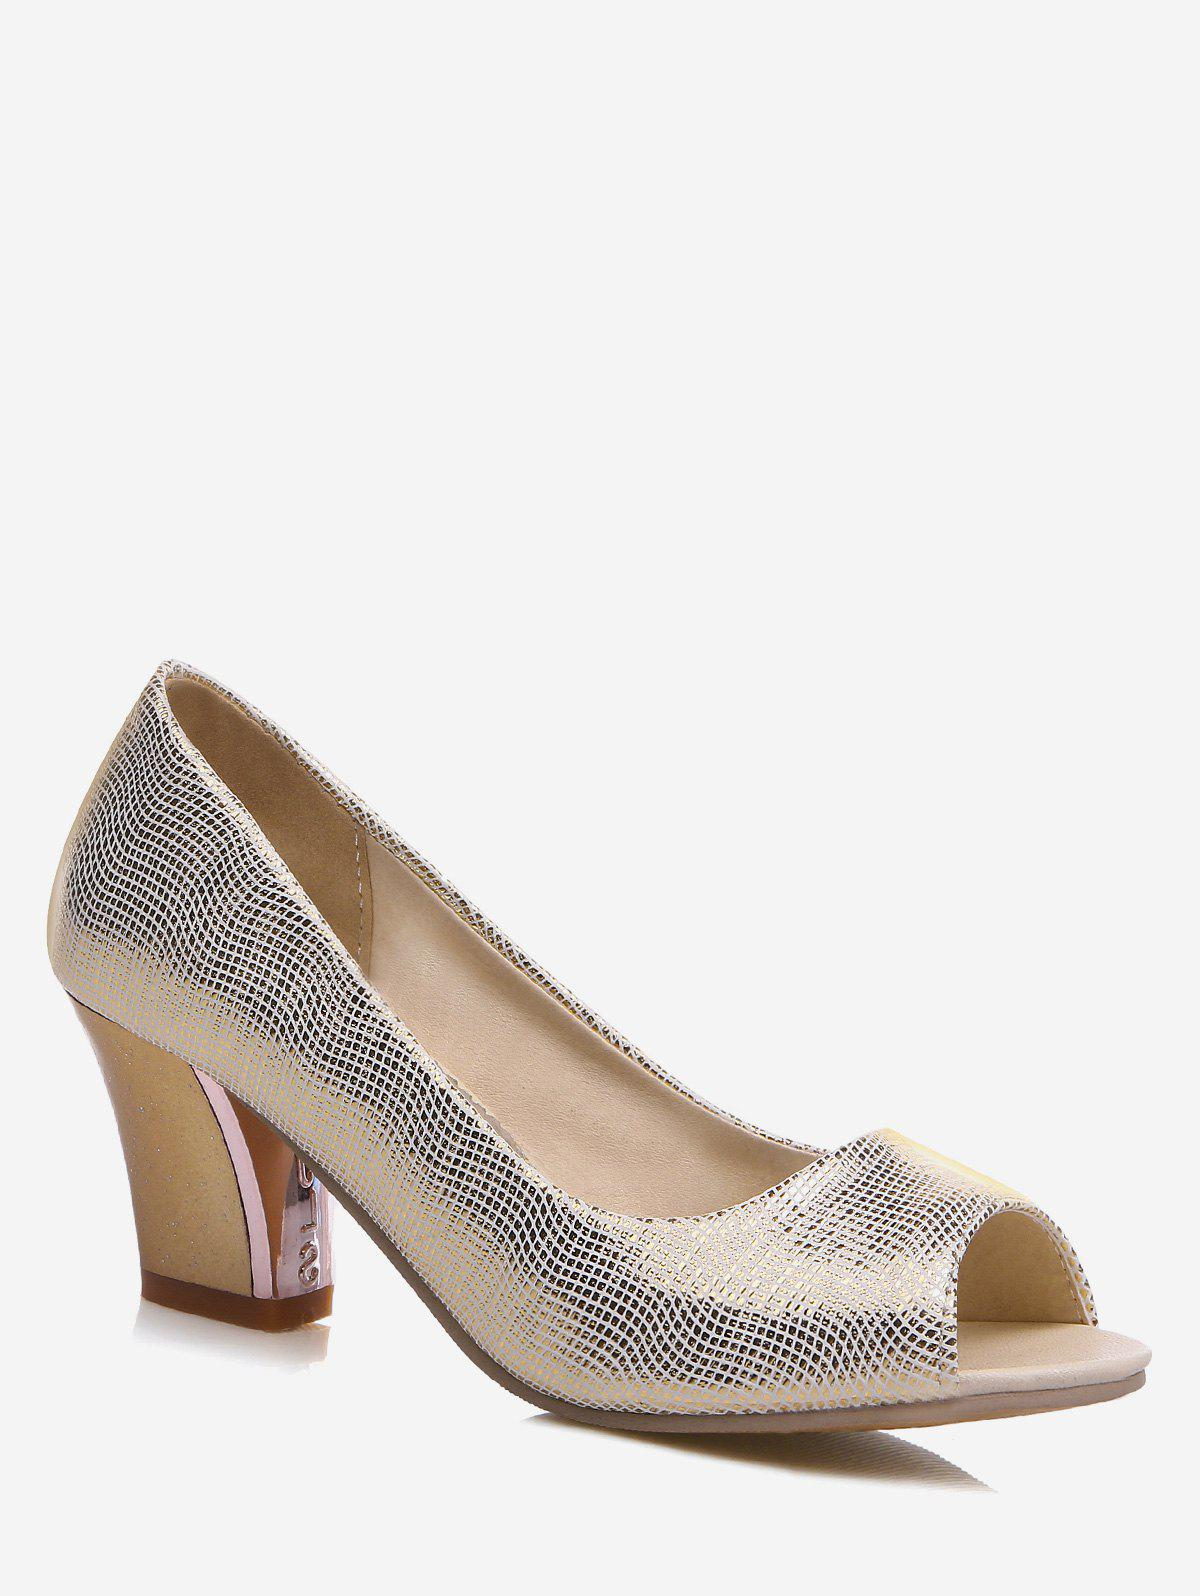 Discount Plus Size Shimmer High Heel Pumps